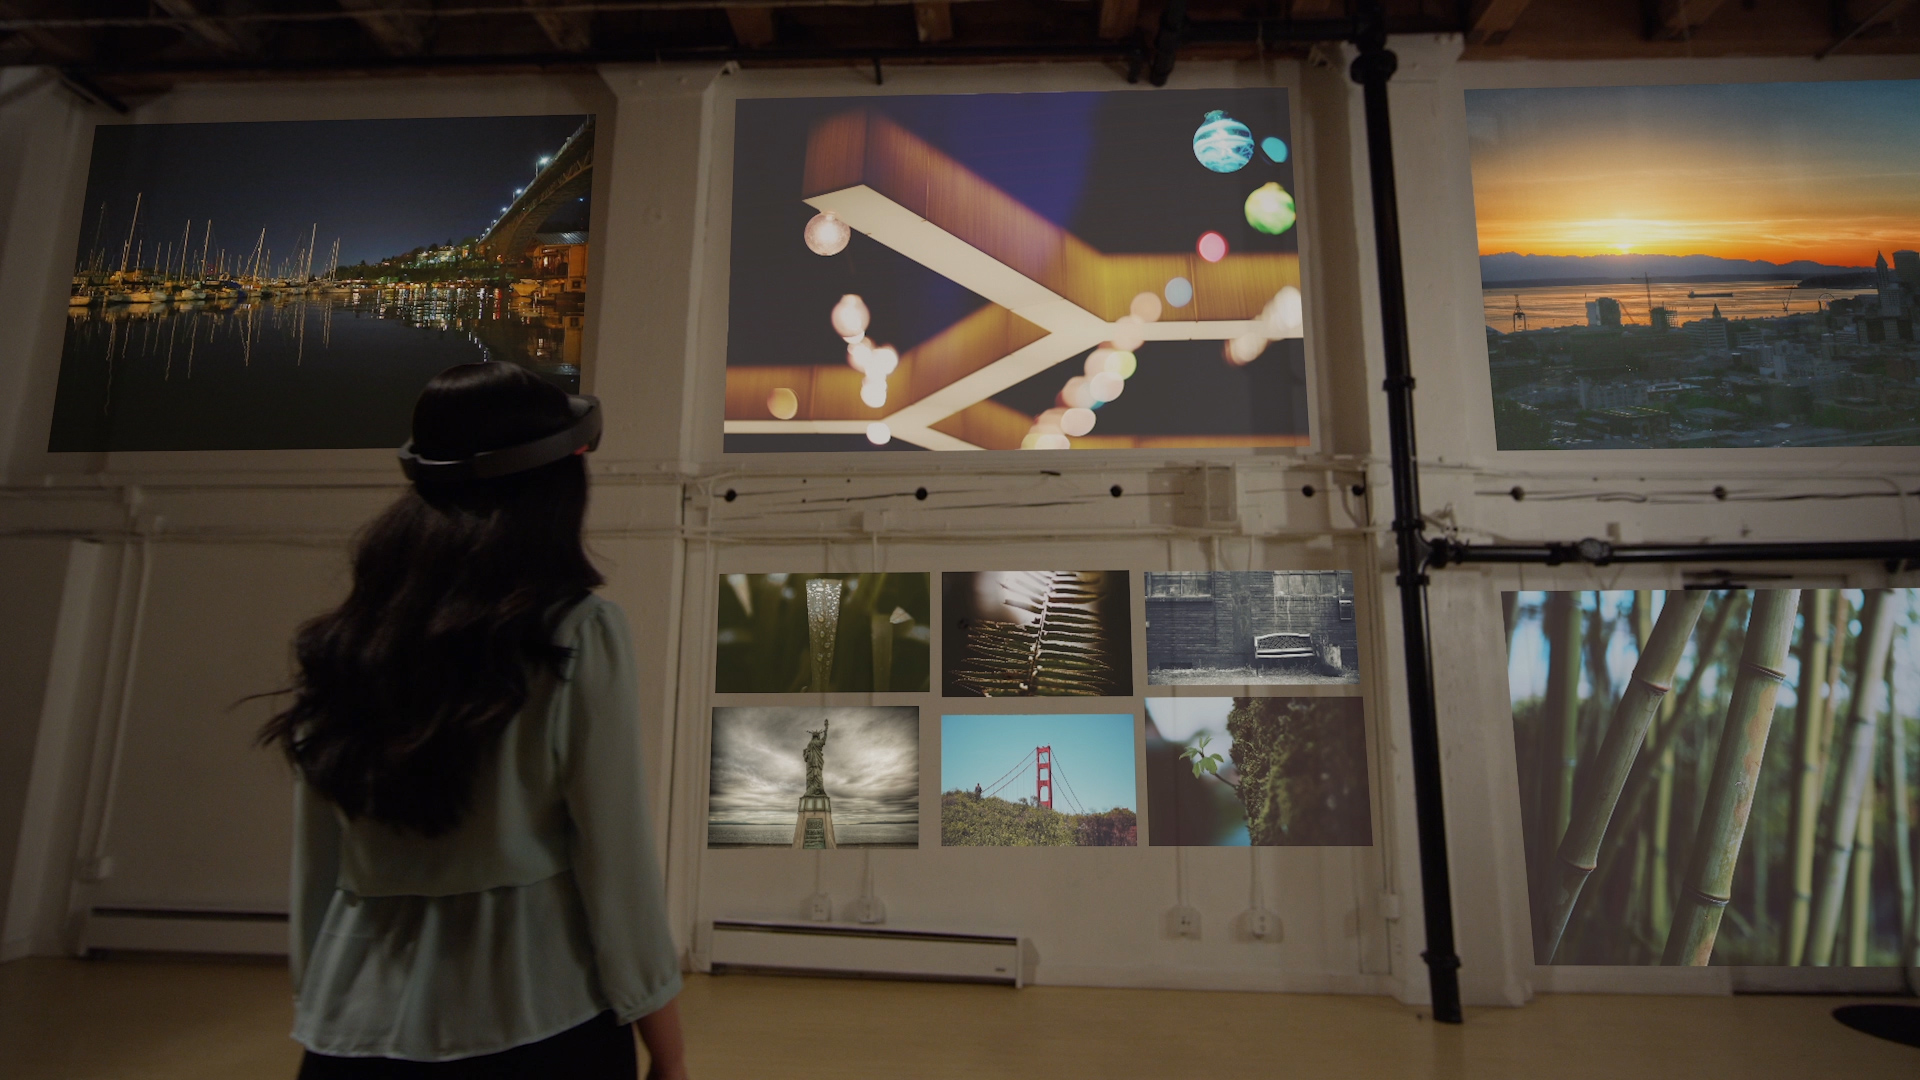 microsoft hololens may 2016 (2)